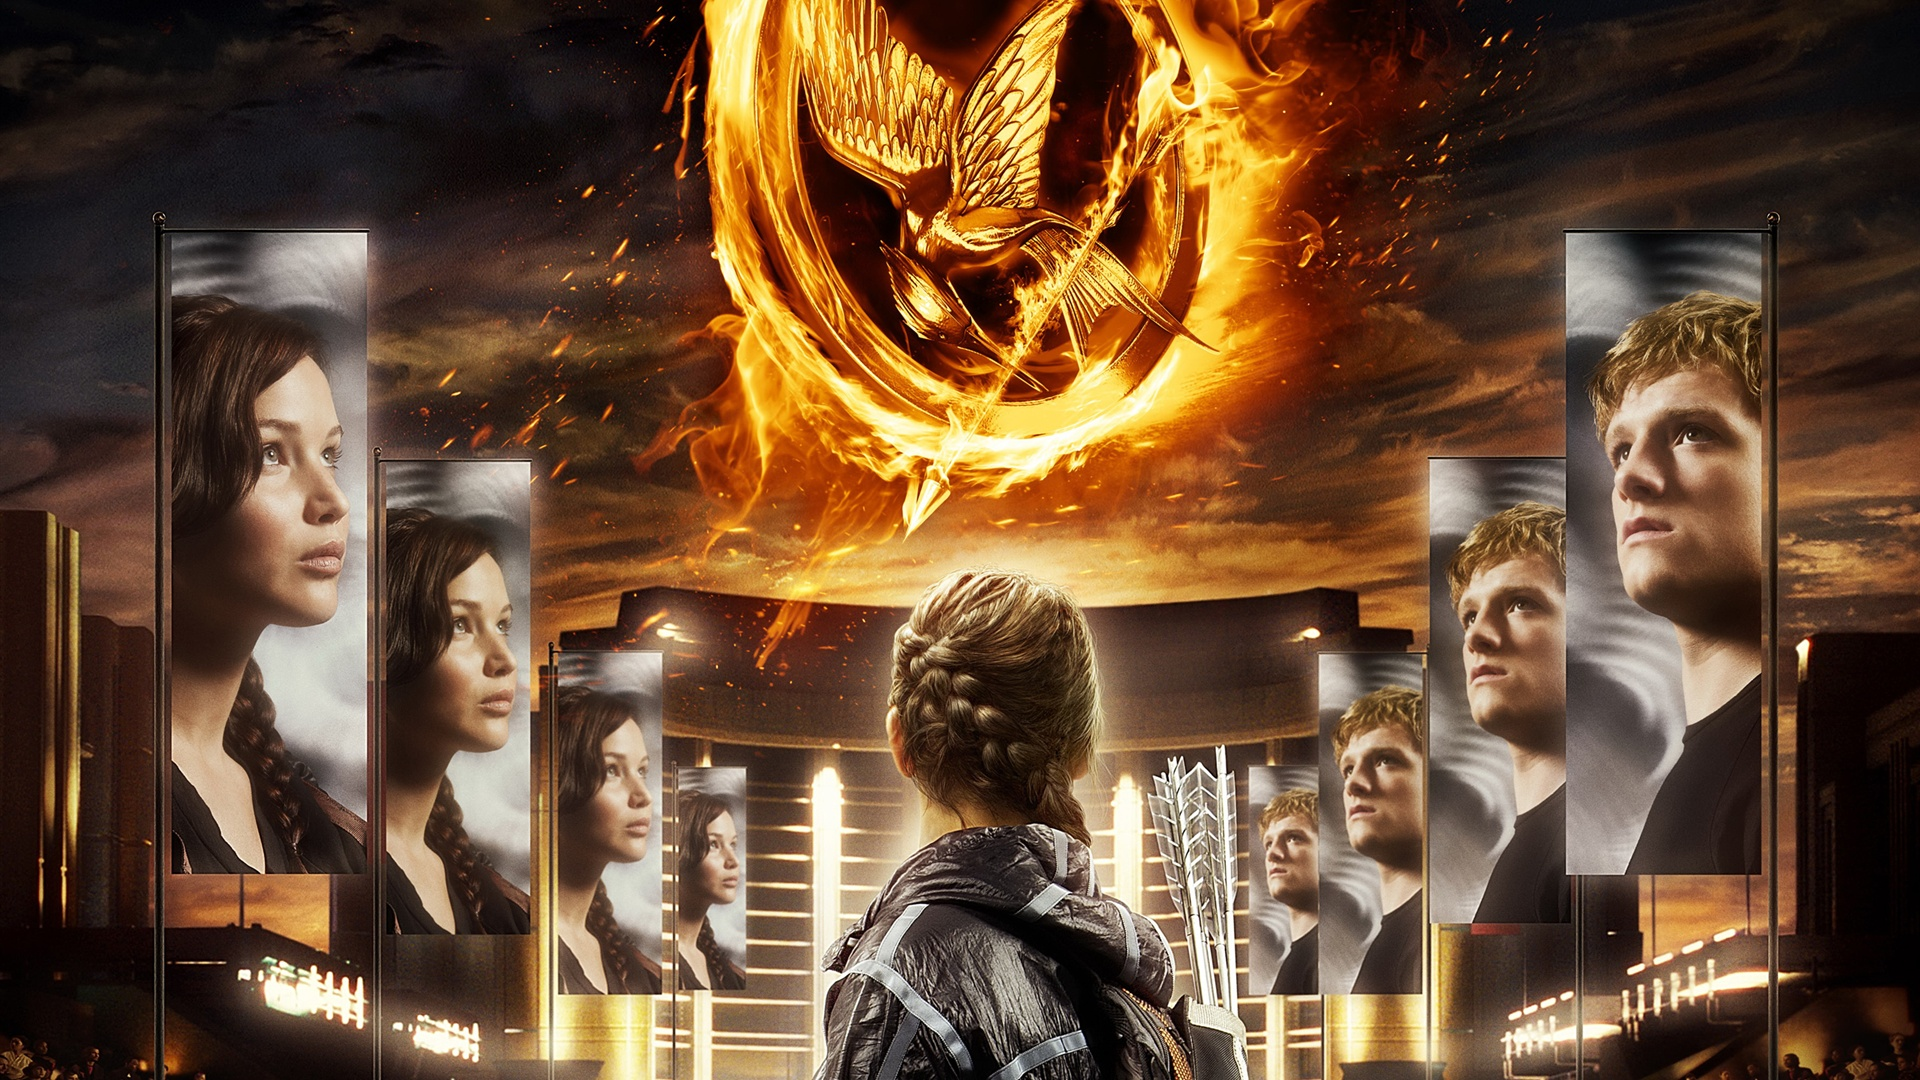 The Hunger Games 2012 wallpaper - 1920x1080